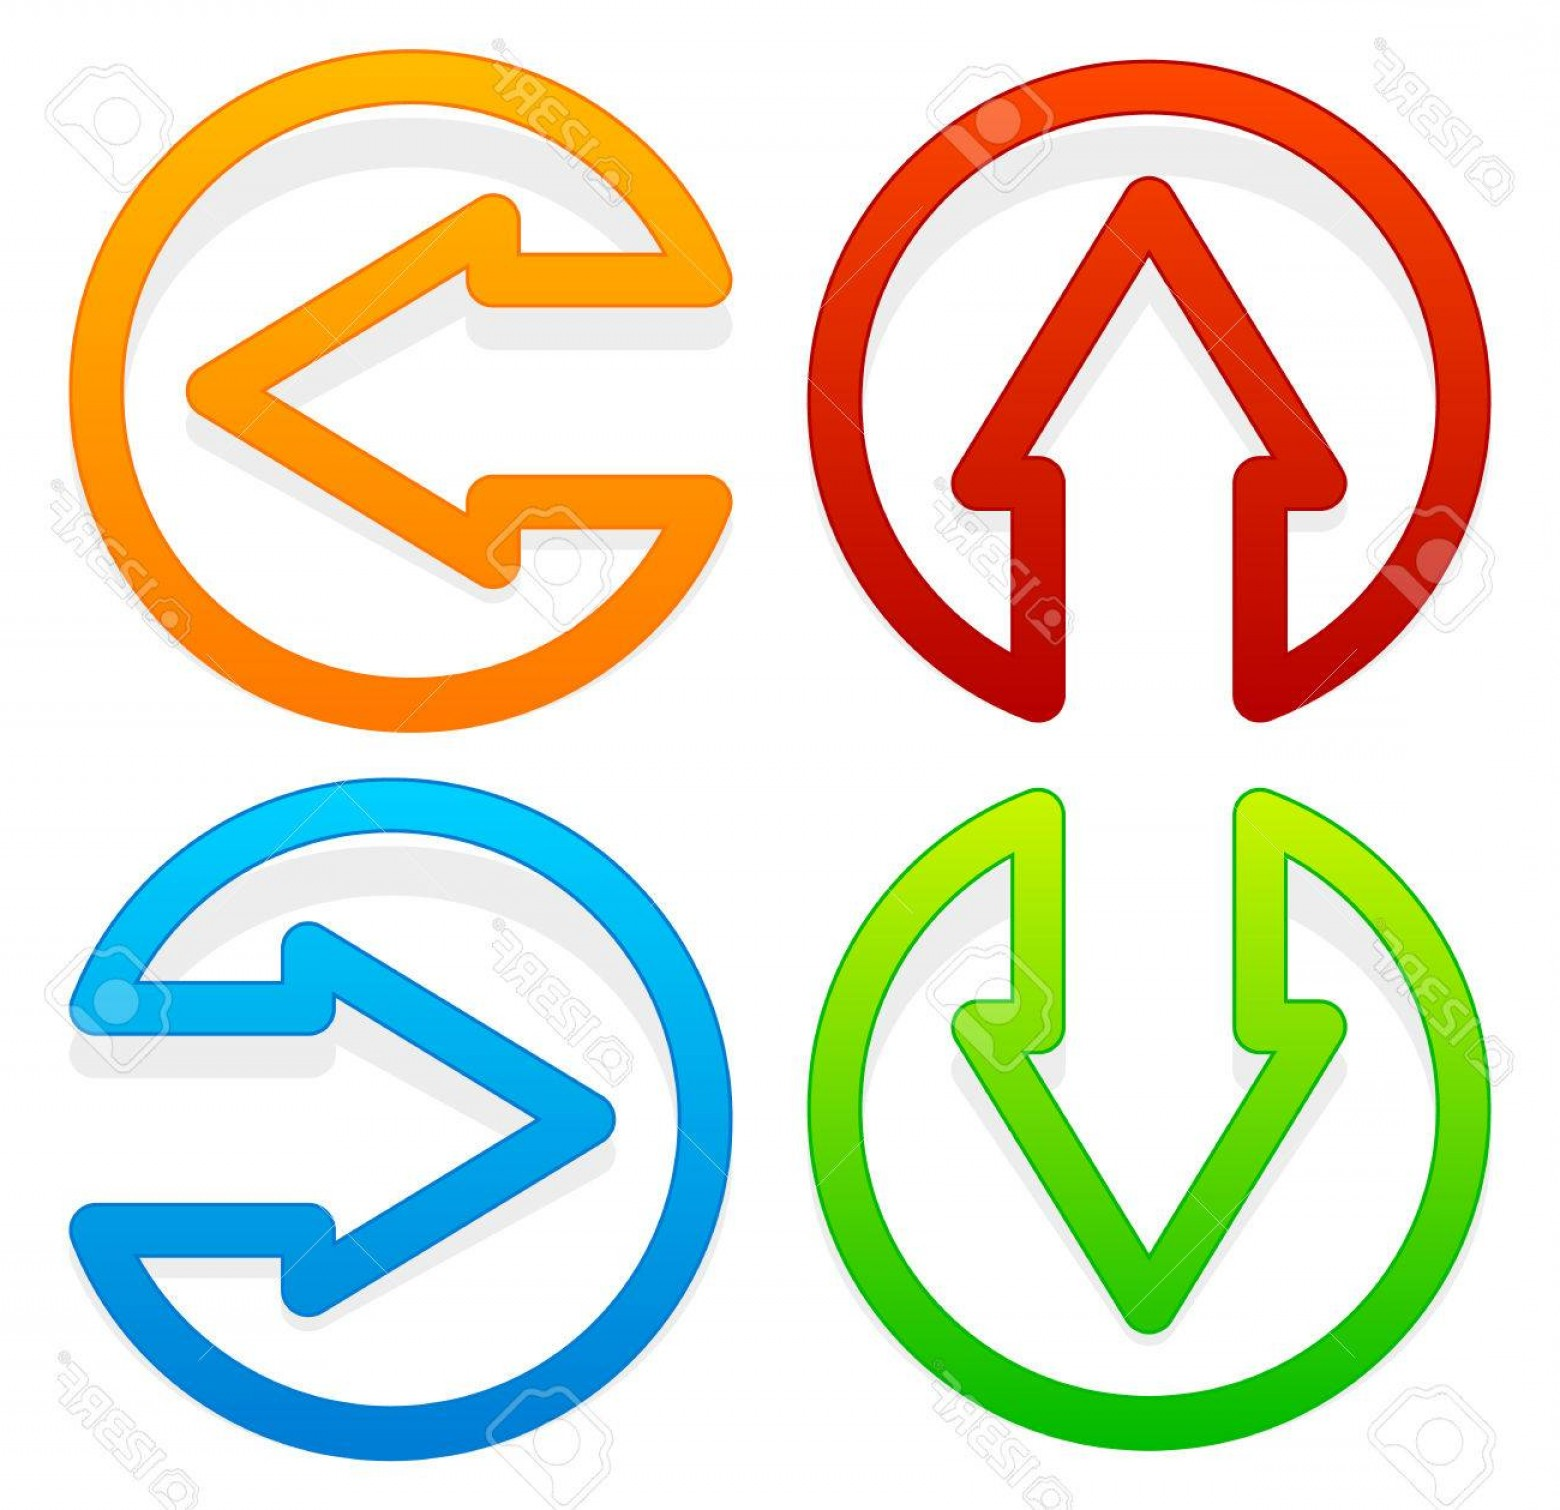 Up And Right Arrows Vector: Photostock Vector Arrow Icons Pointing Left Right Up And Down